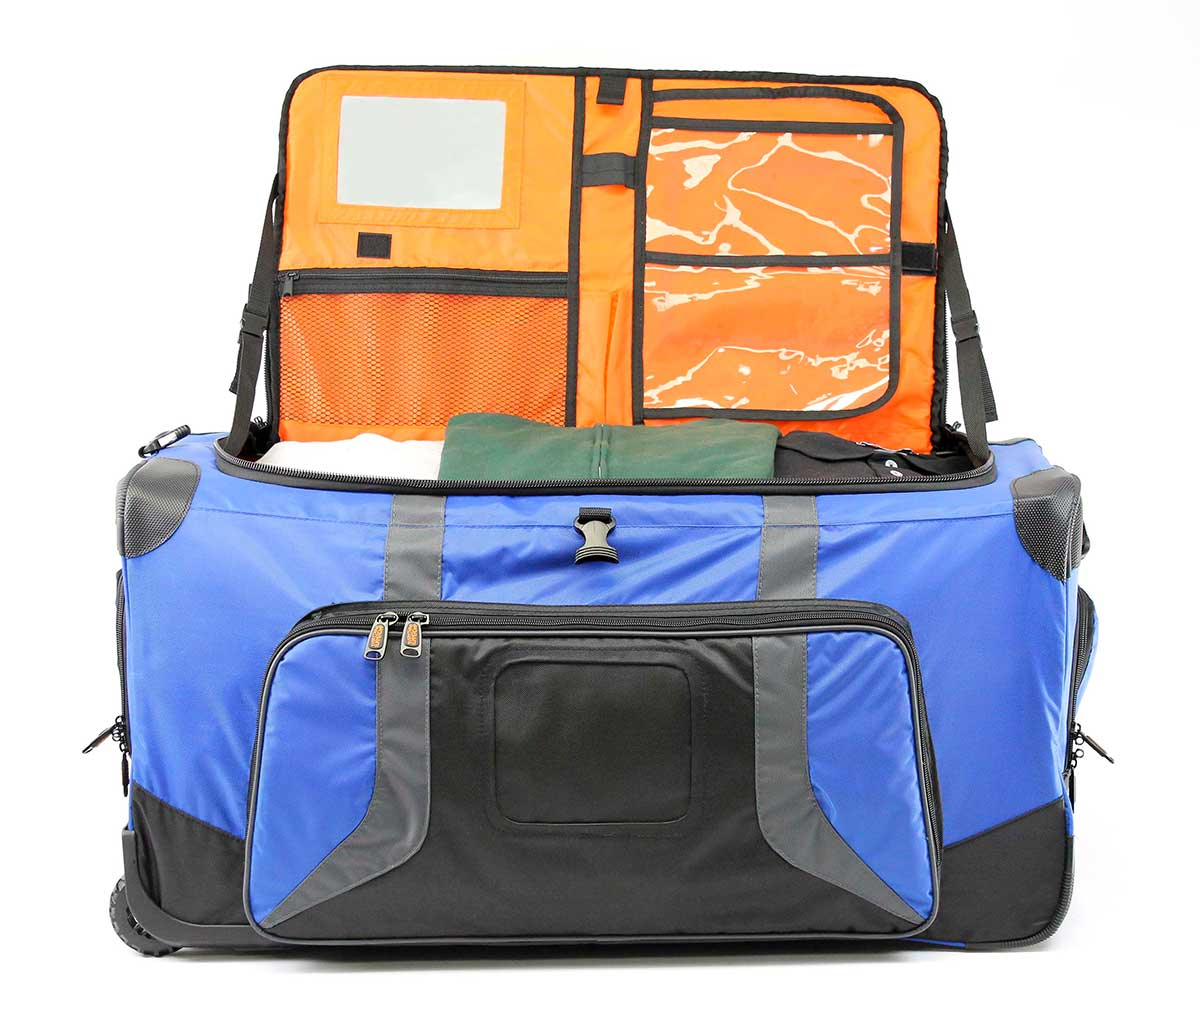 Pop Up Soft Trunk Blue Corner Classic Lightweight Duffel Navy Opened Showing The Inside Including Built In Lidmate Organizer